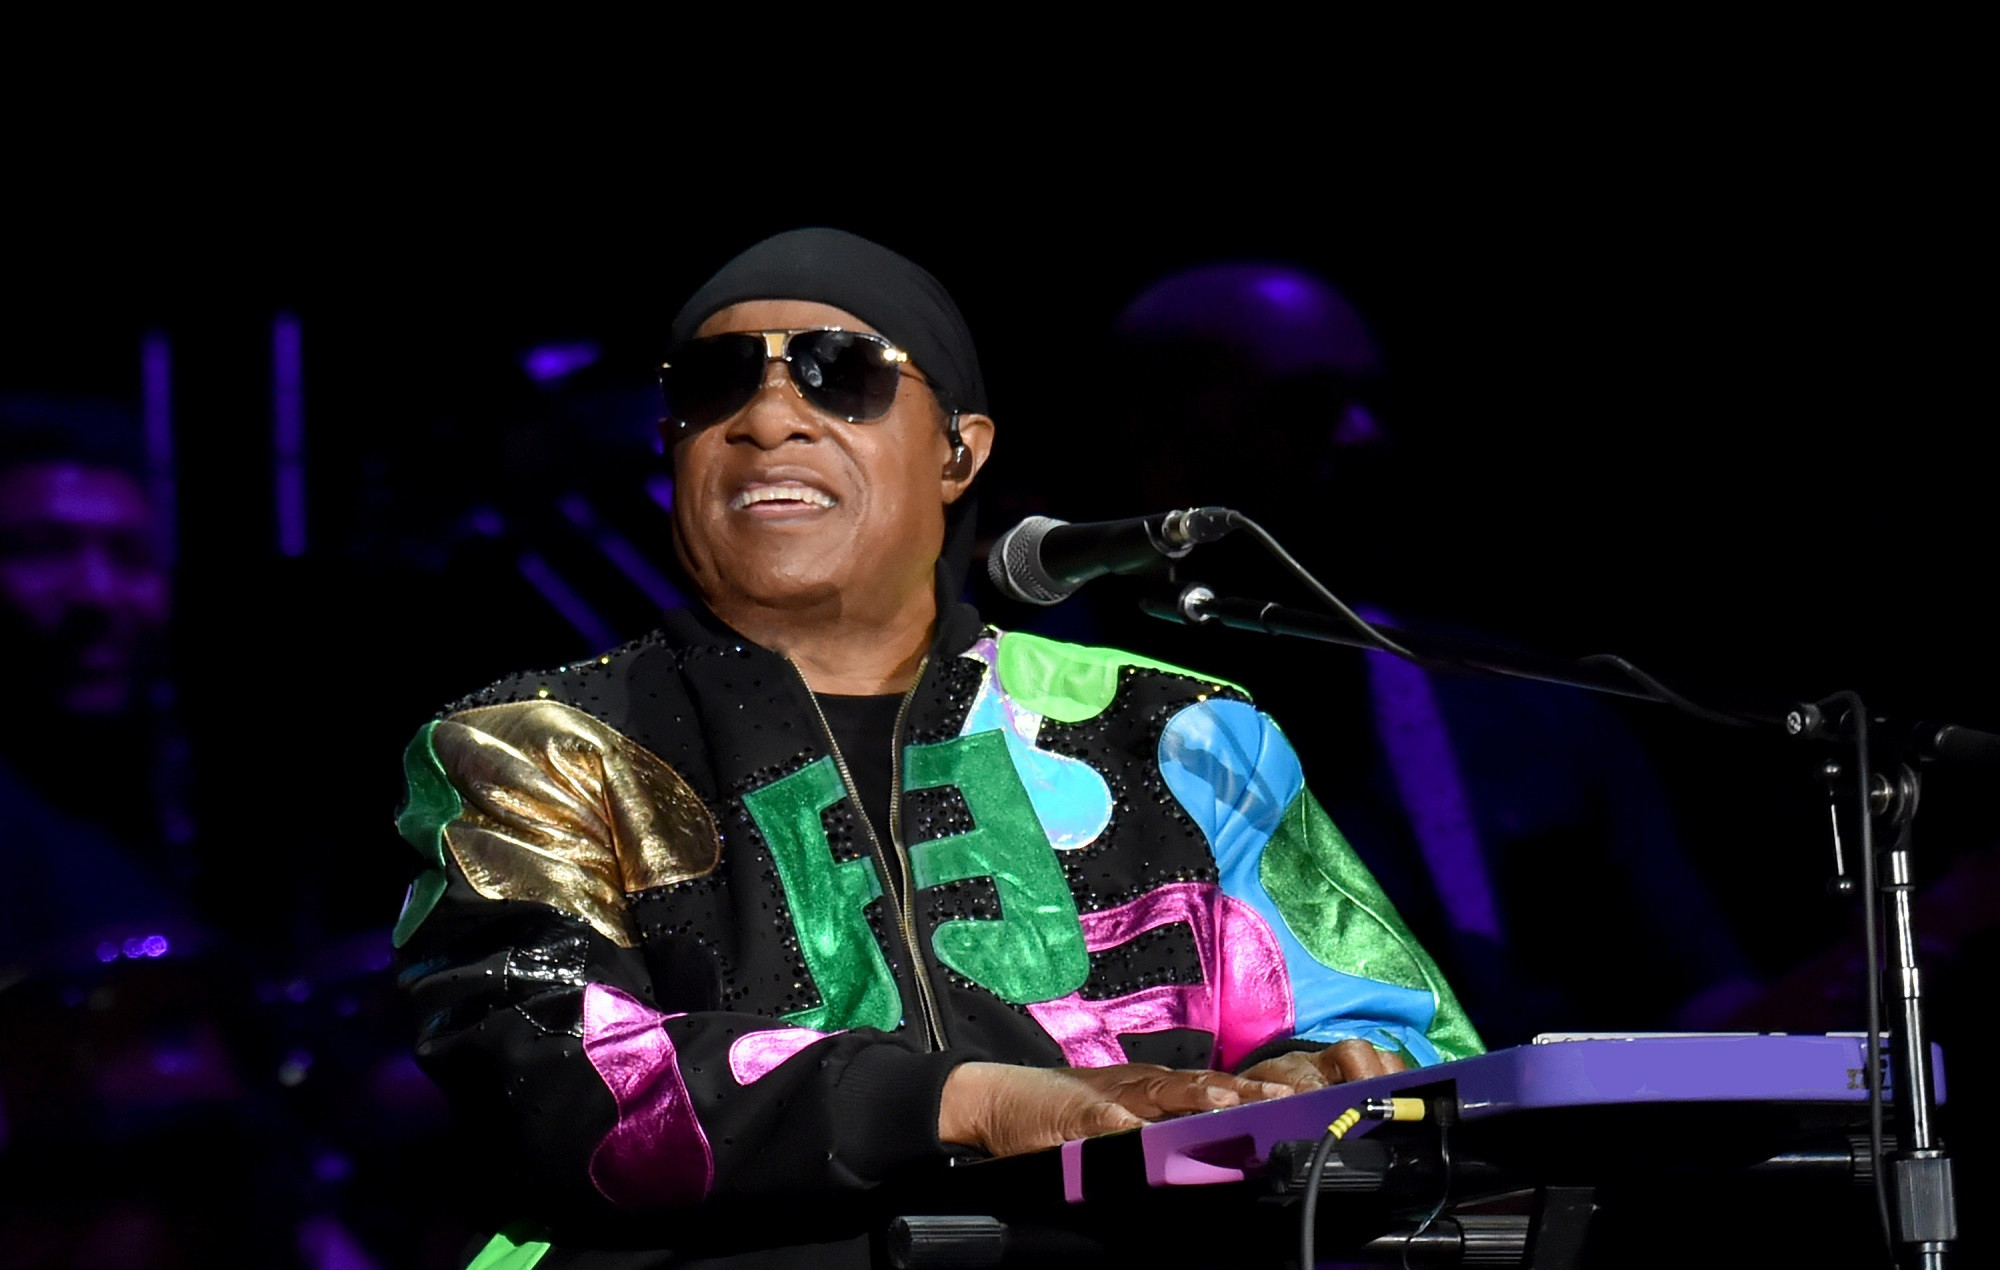 Stevie Wonder planning to move permanently to Ghana over racial injustice in America (video)